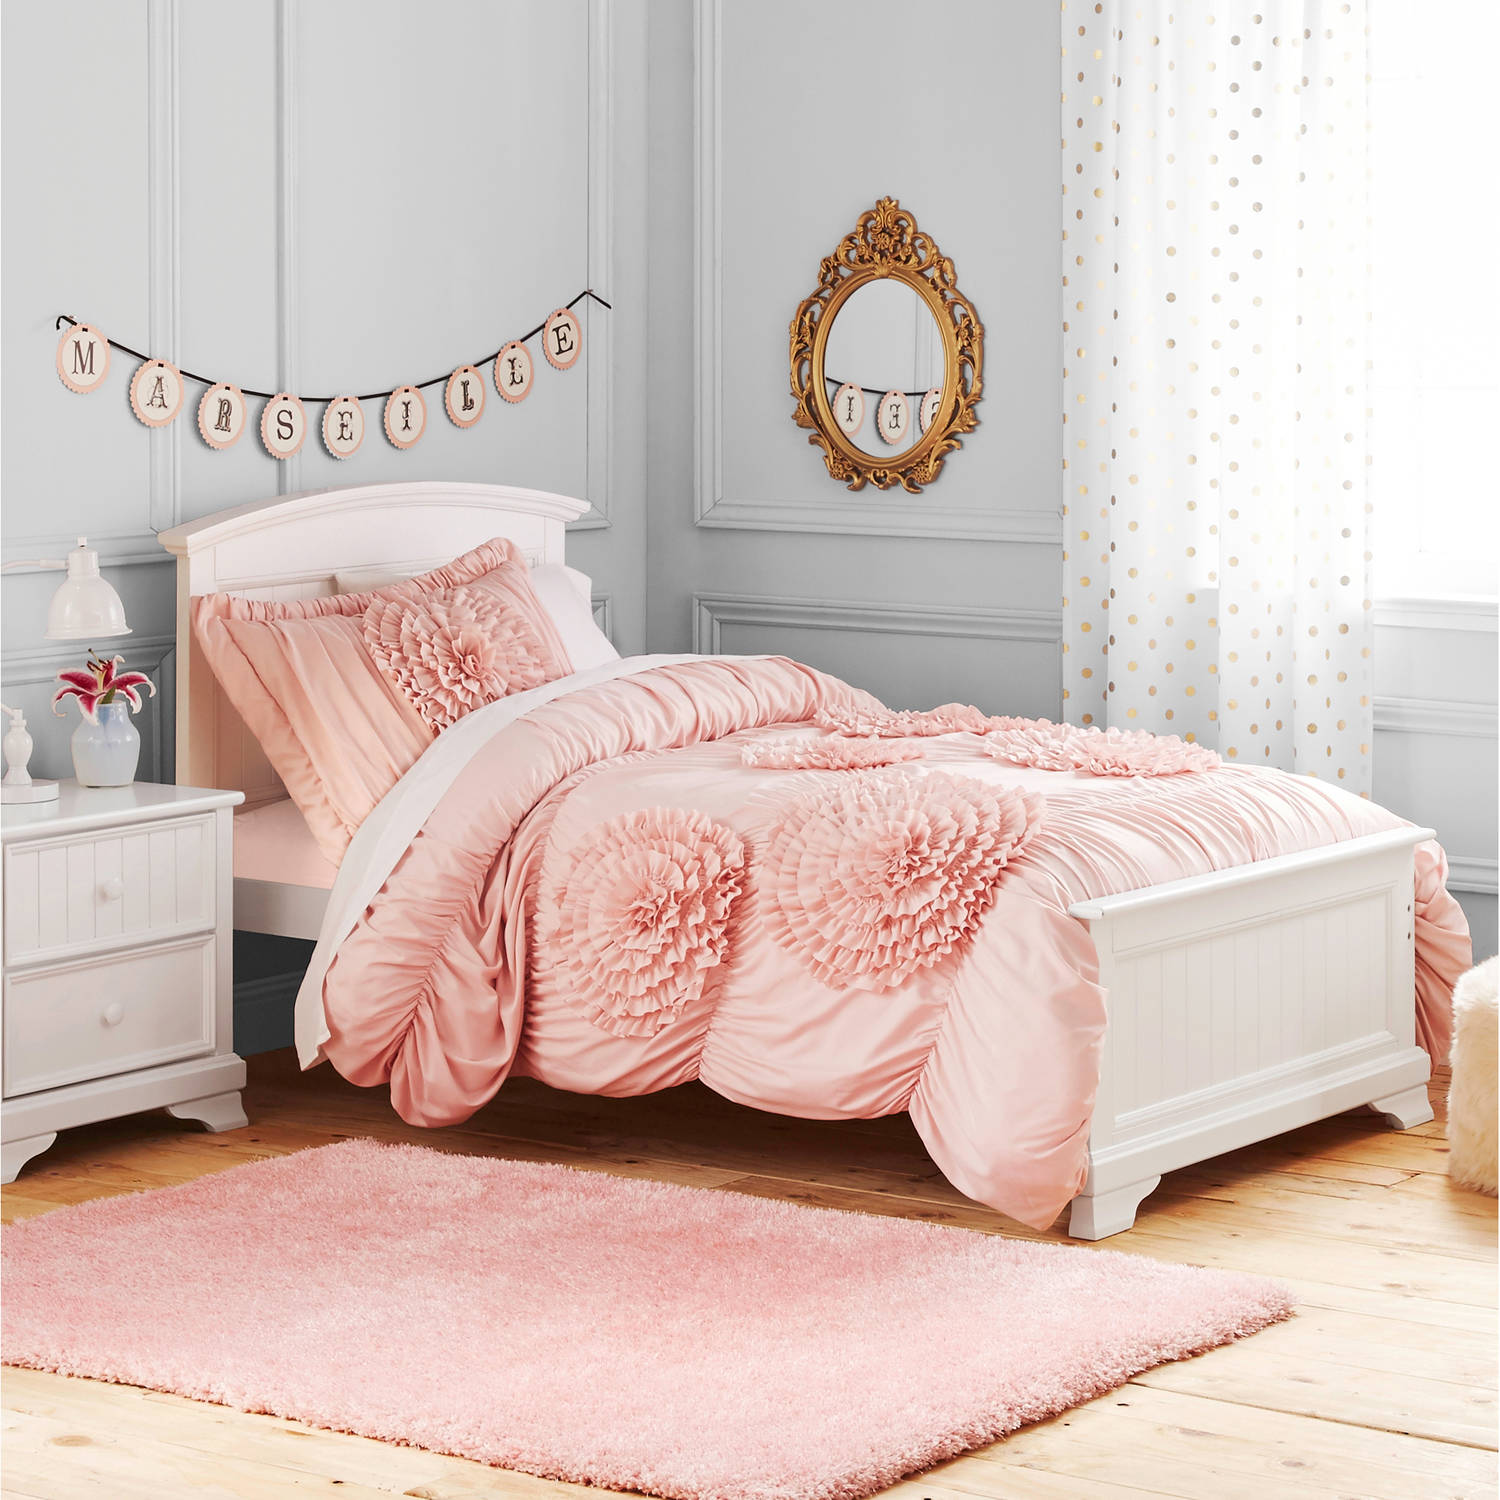 Pony Bedroom Accessories Kids Rooms Walmartcom